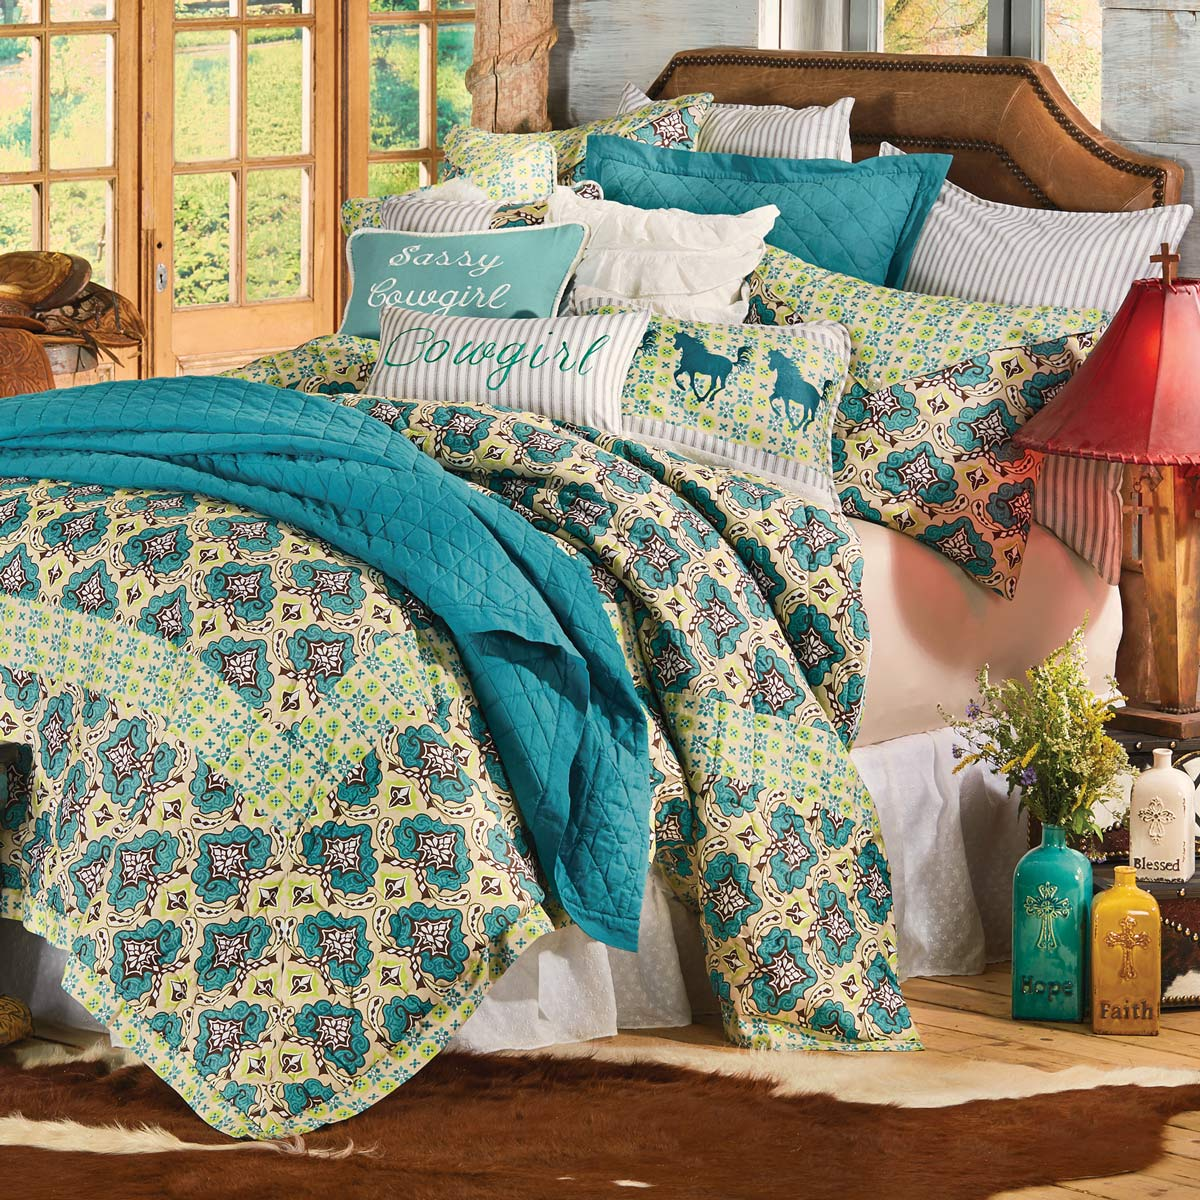 Black Forest Decor Western spring quilt bed set - full/queen